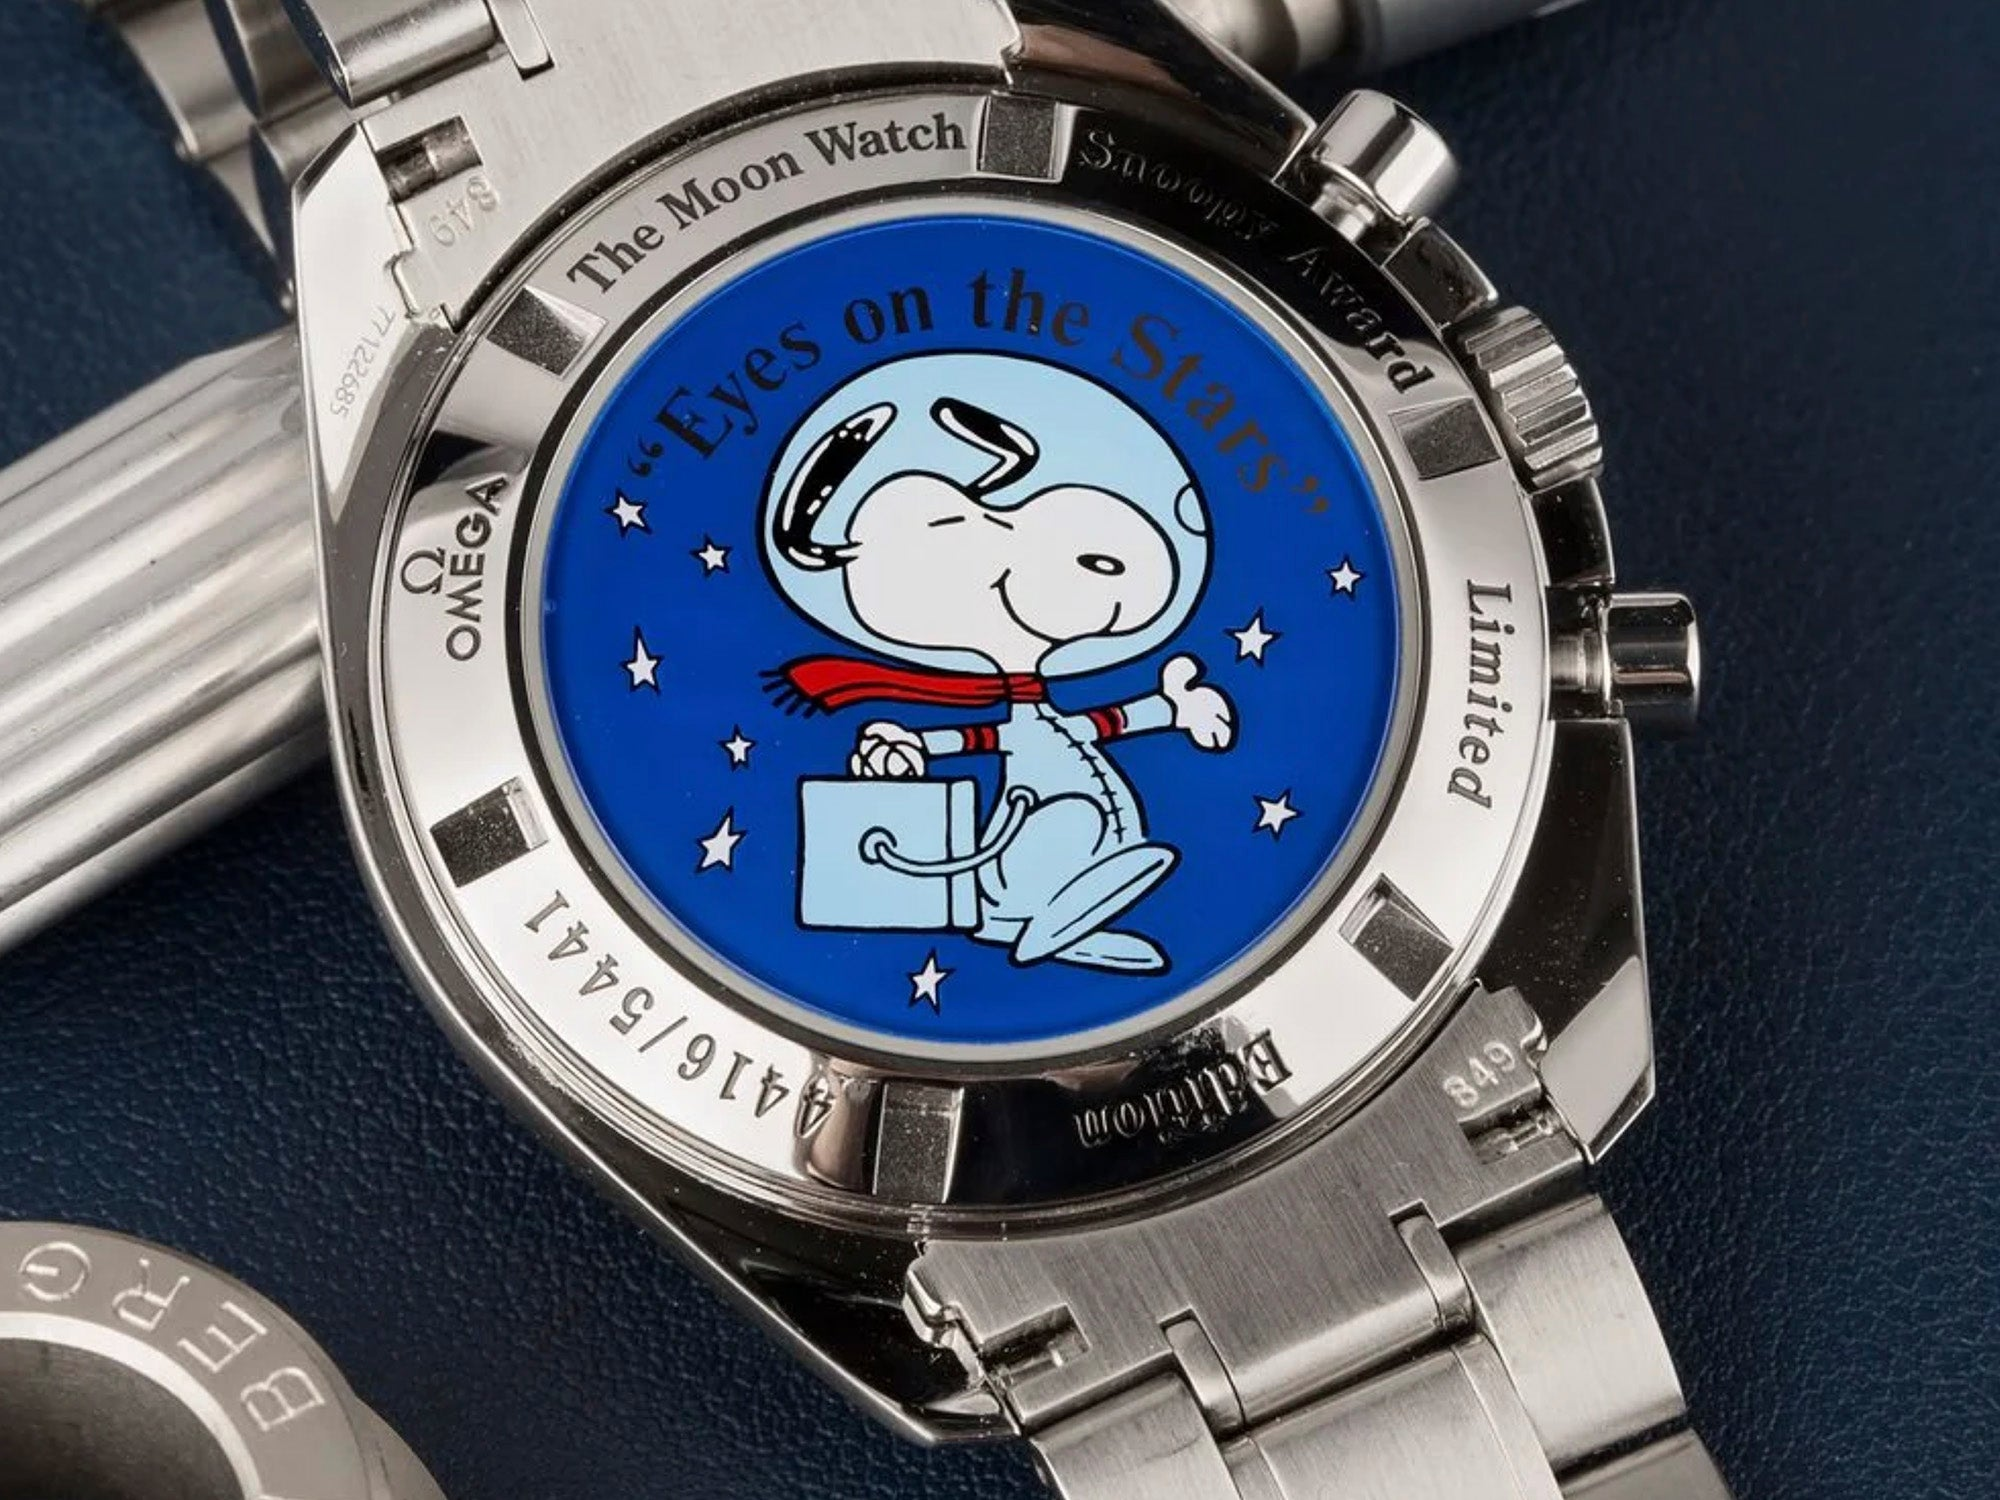 strapcode-watch-bands-Omega-2003-Snoopy-speedmaster-apollo-11-2